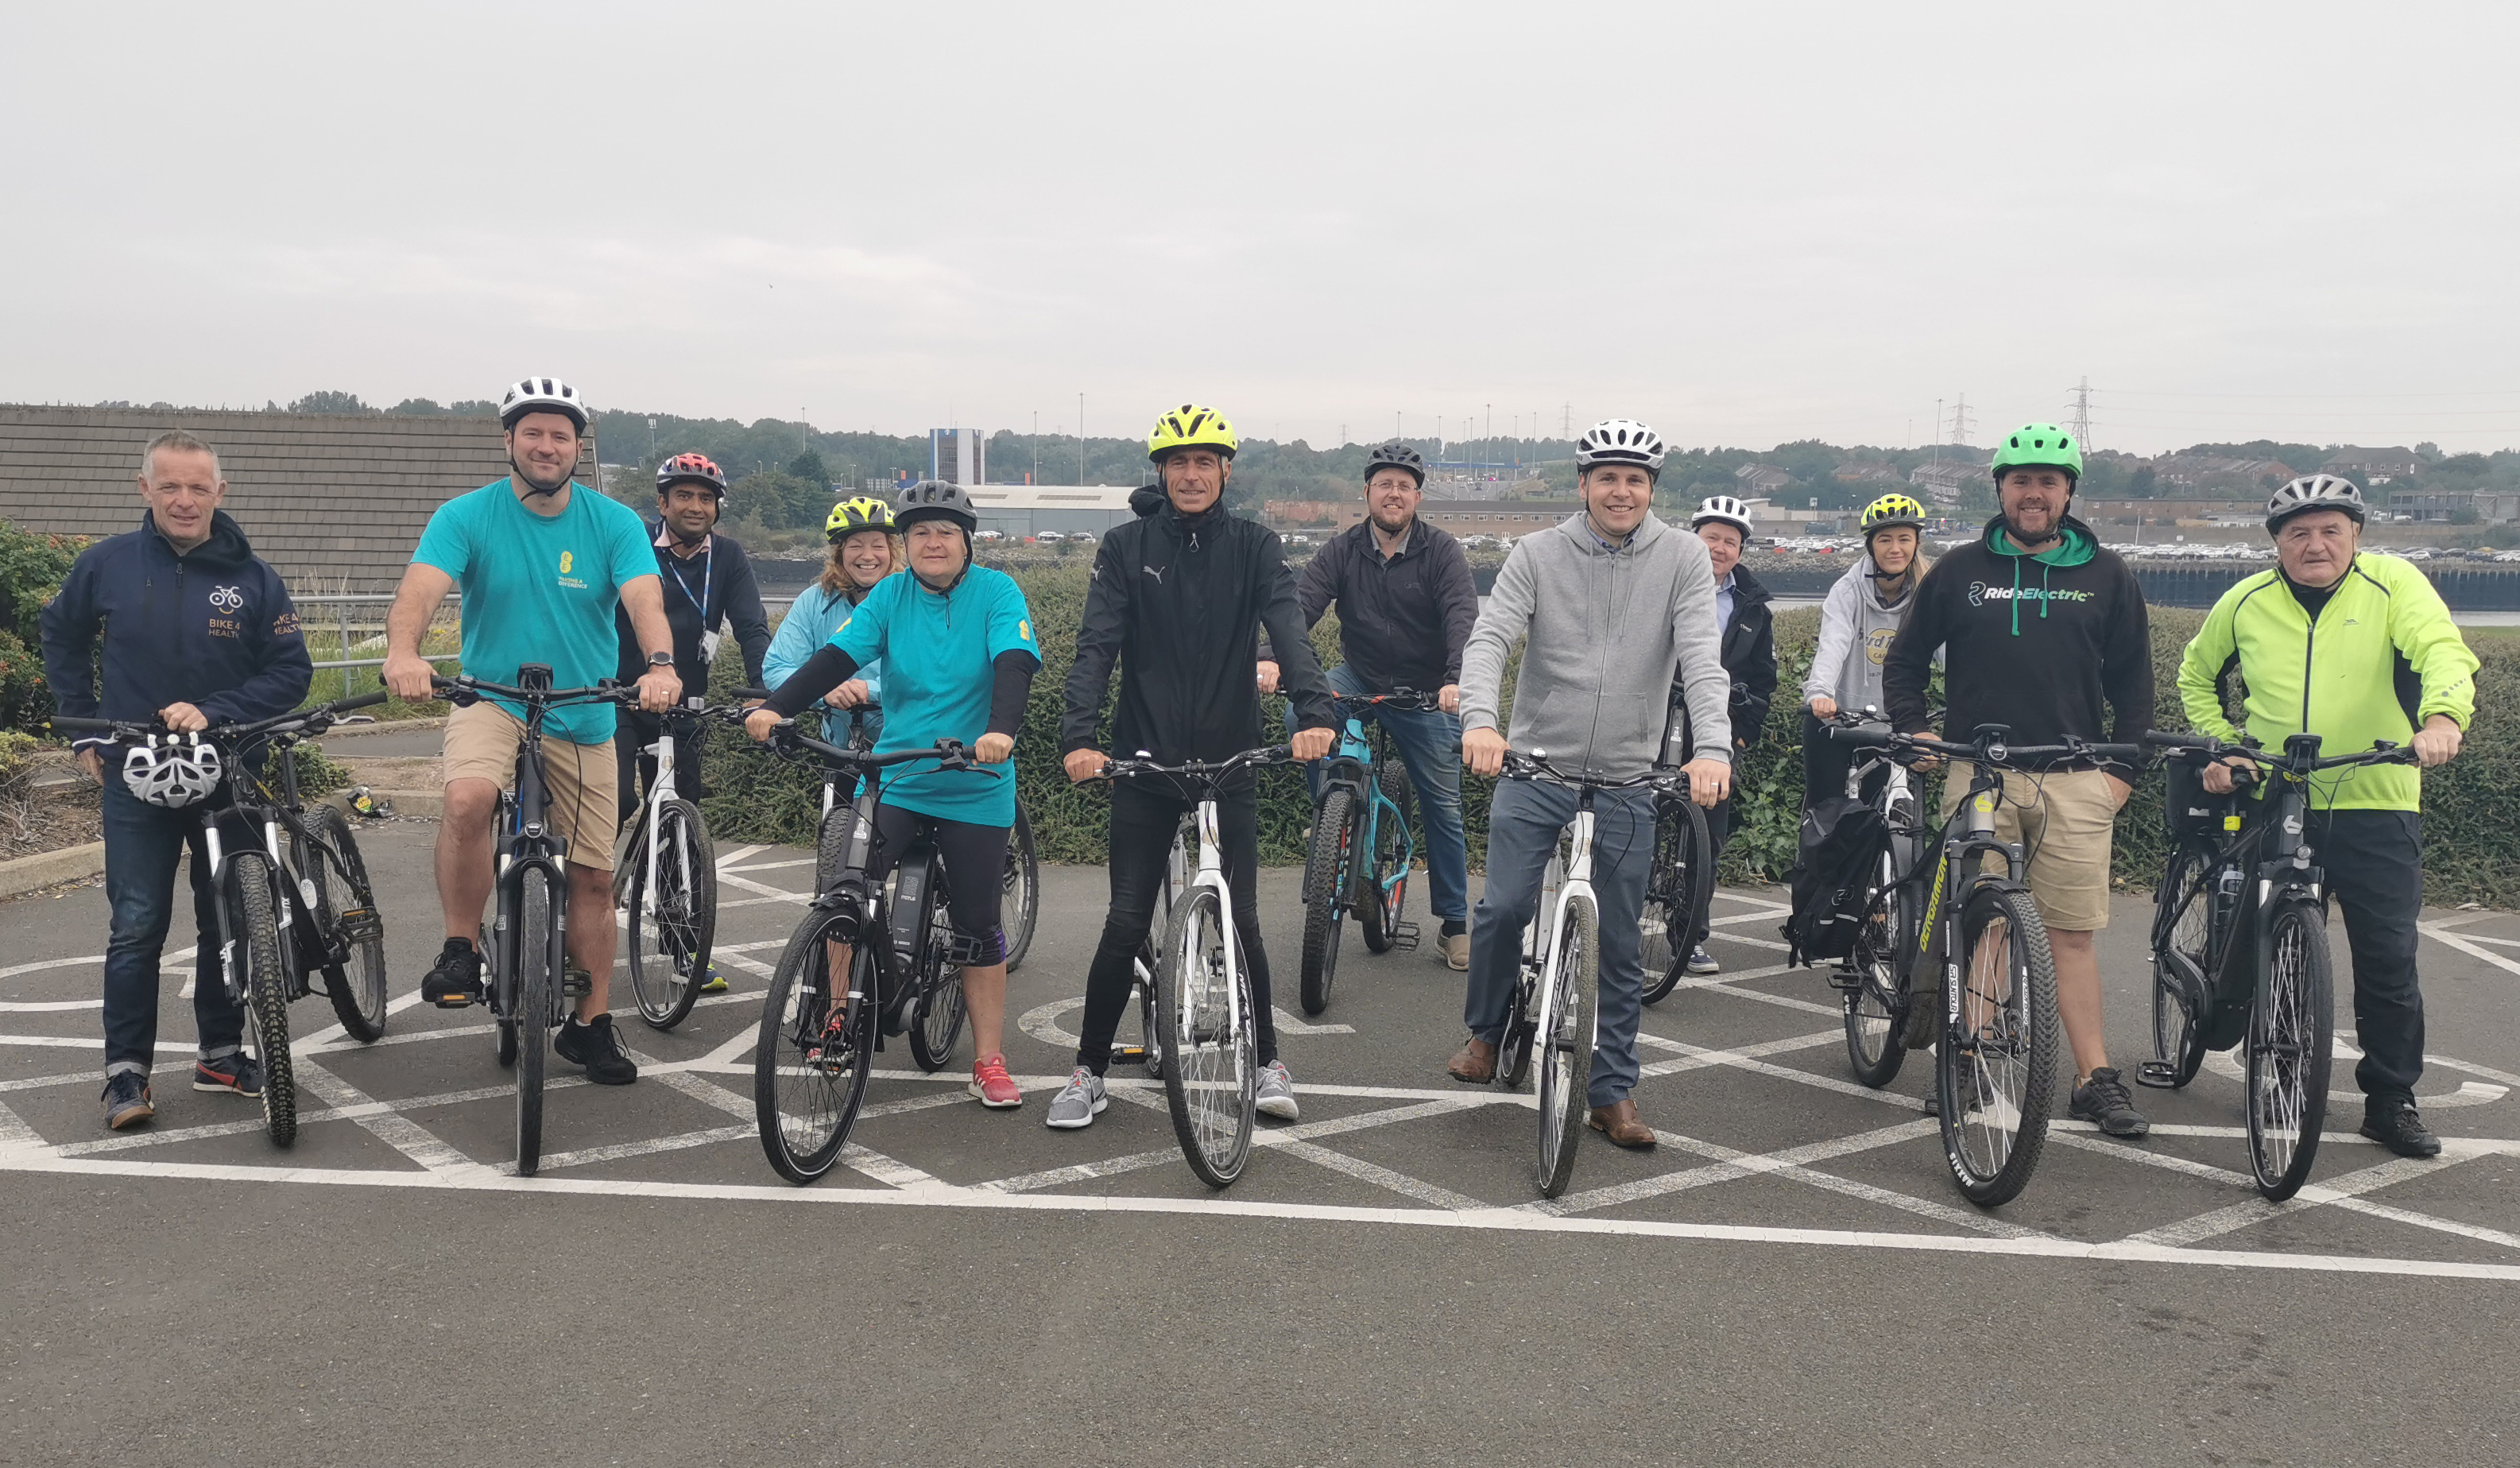 Cobalt business leaders get on 2 wheels to celebrate Pedestrian & Cyclist tunnel launch